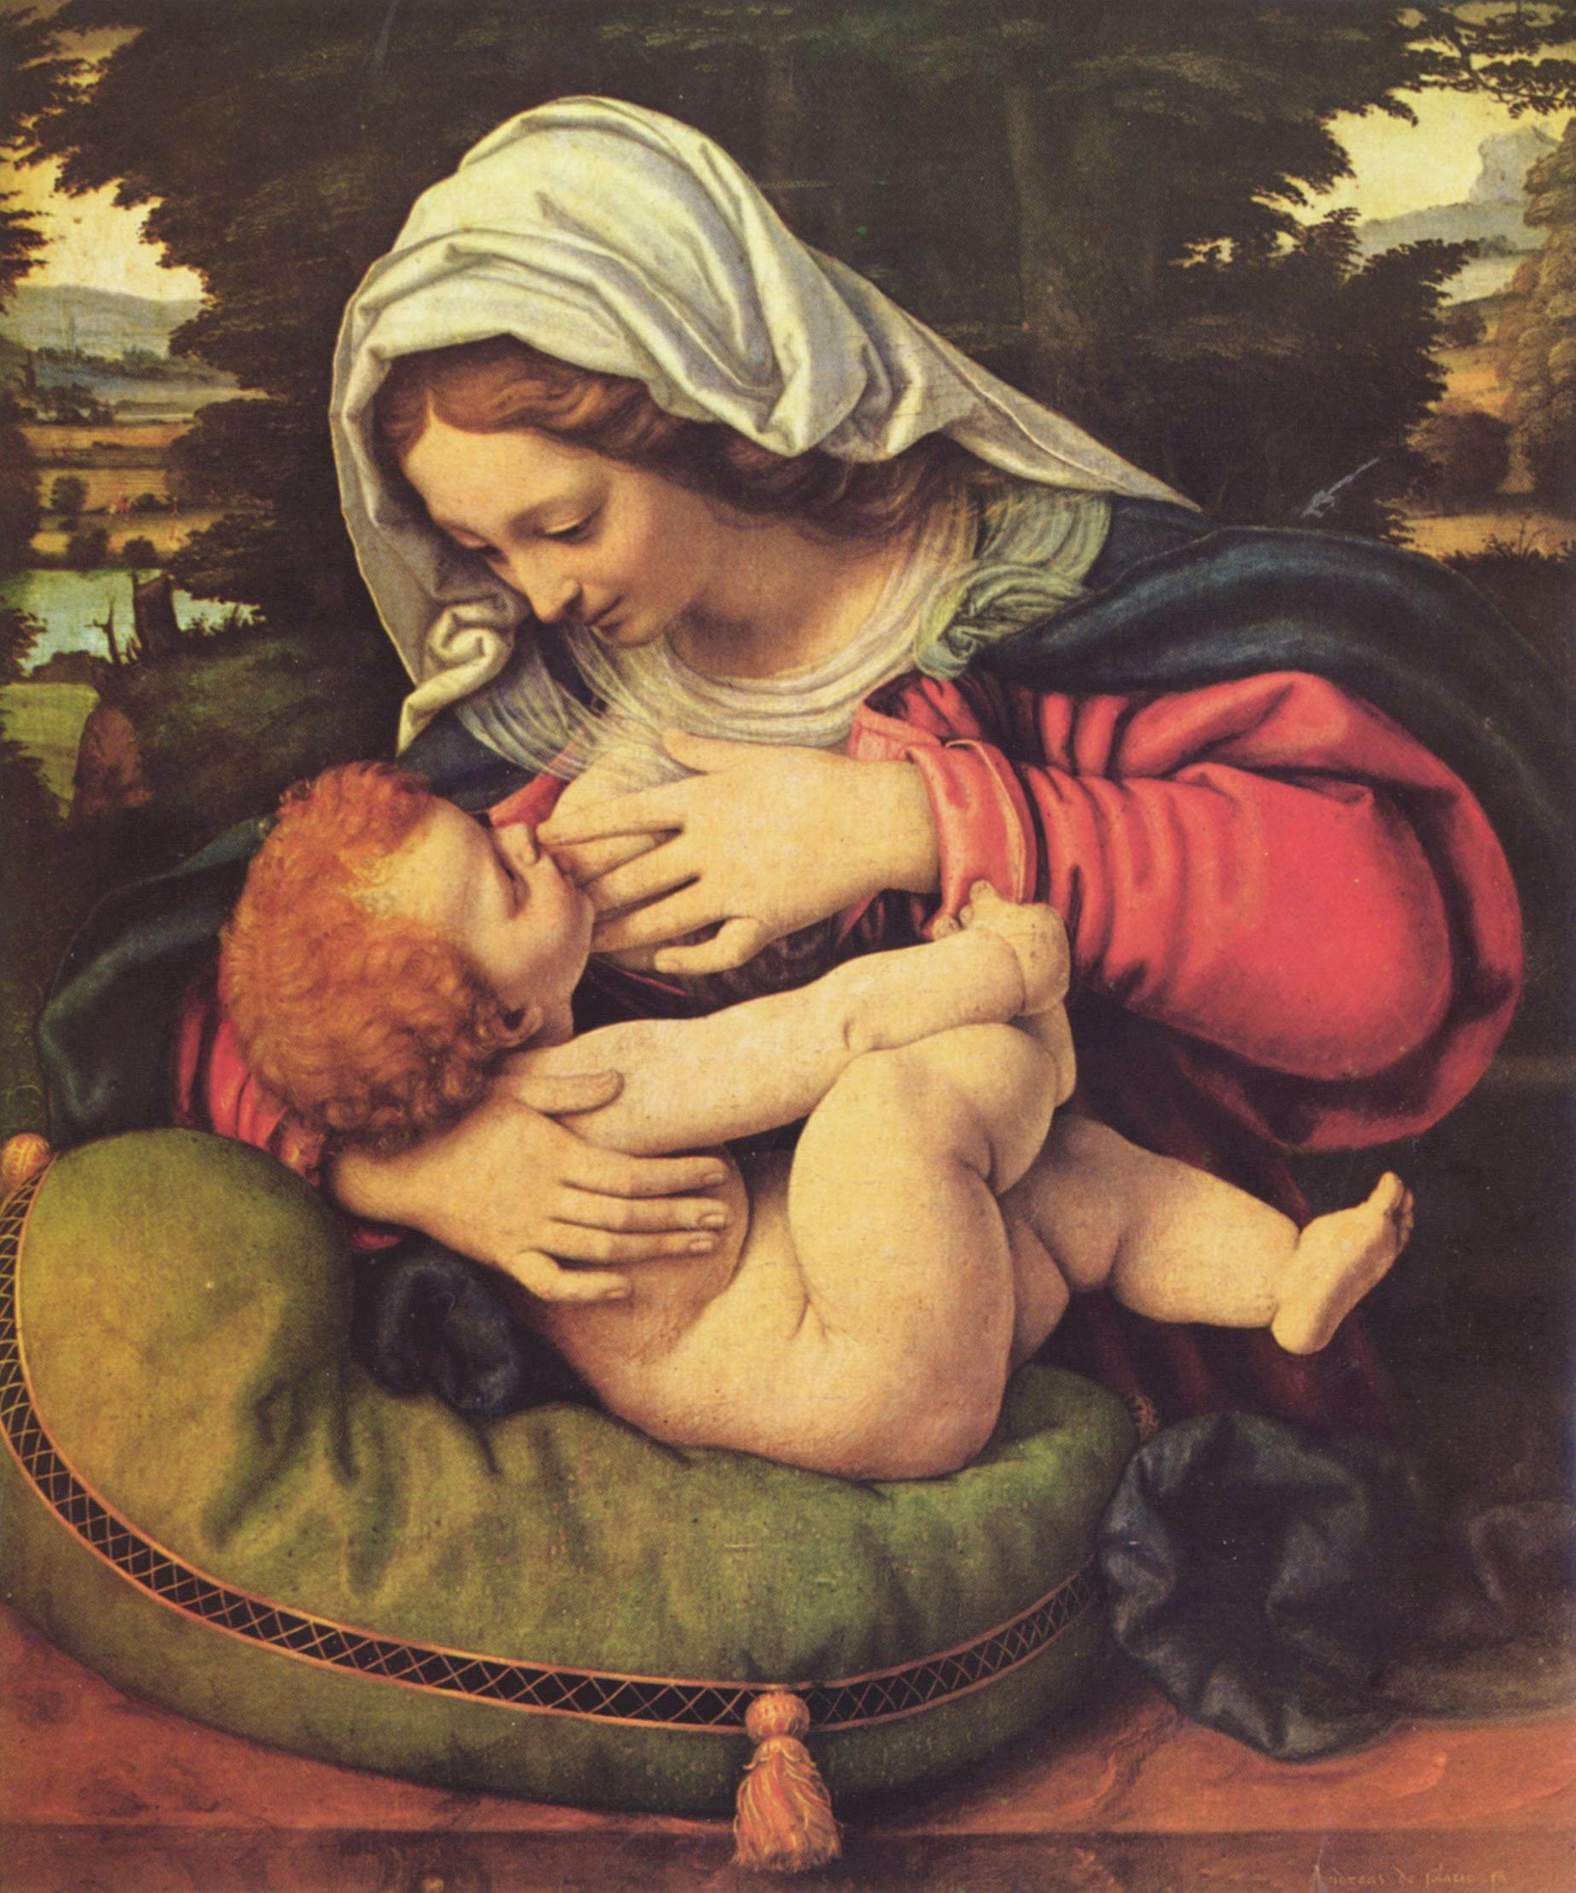 http://upload.wikimedia.org/wikipedia/commons/e/ee/Andrea_Solario_002.jpg